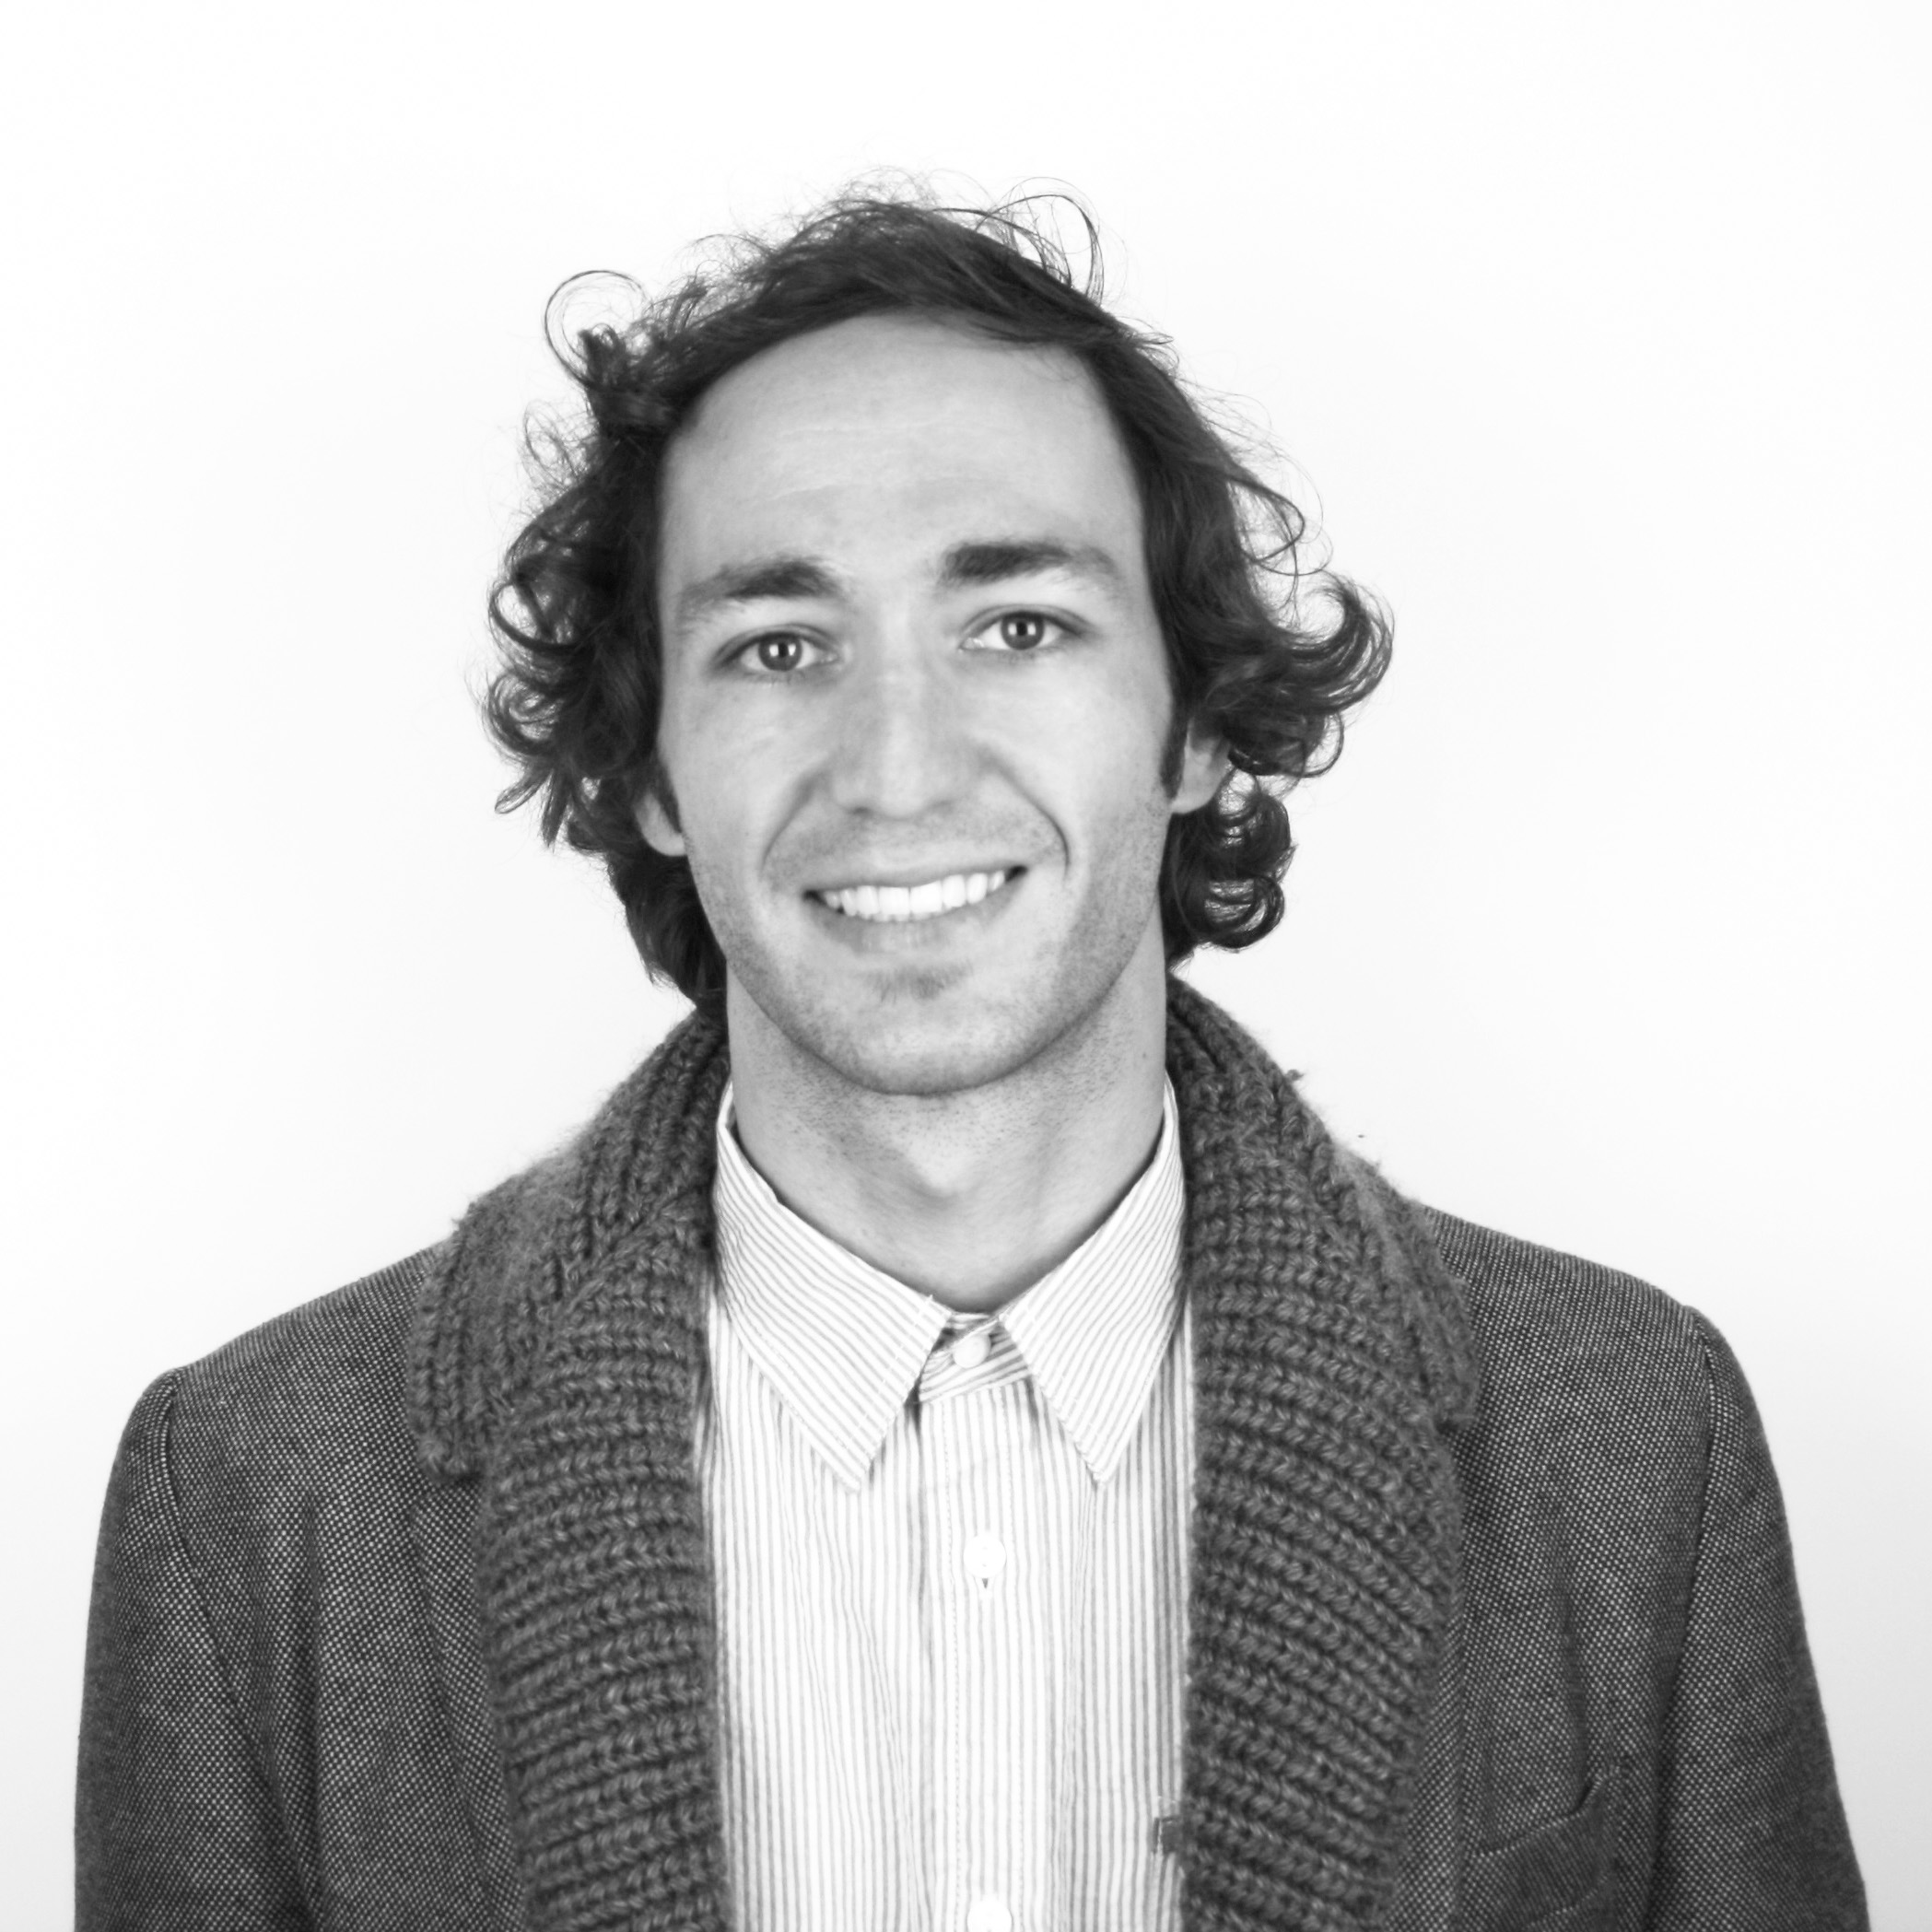 Nicolas Cabargas Mori    OF Arquitectos //UDP University //Chile   Licensed architect in Chile, he obtained his Master in Architecture with Distinction from the Architectural Association at the Emergent Technologies and Design Programme (2012-2014). Nicolas is currently partner at OF Arquitectos, Chile; Head of Technologies and Graphic Expression Department at The Architecture School of Universidad Diego Portales (UDP) and Titular Professor at Universidad Andres Bello (UNAB).